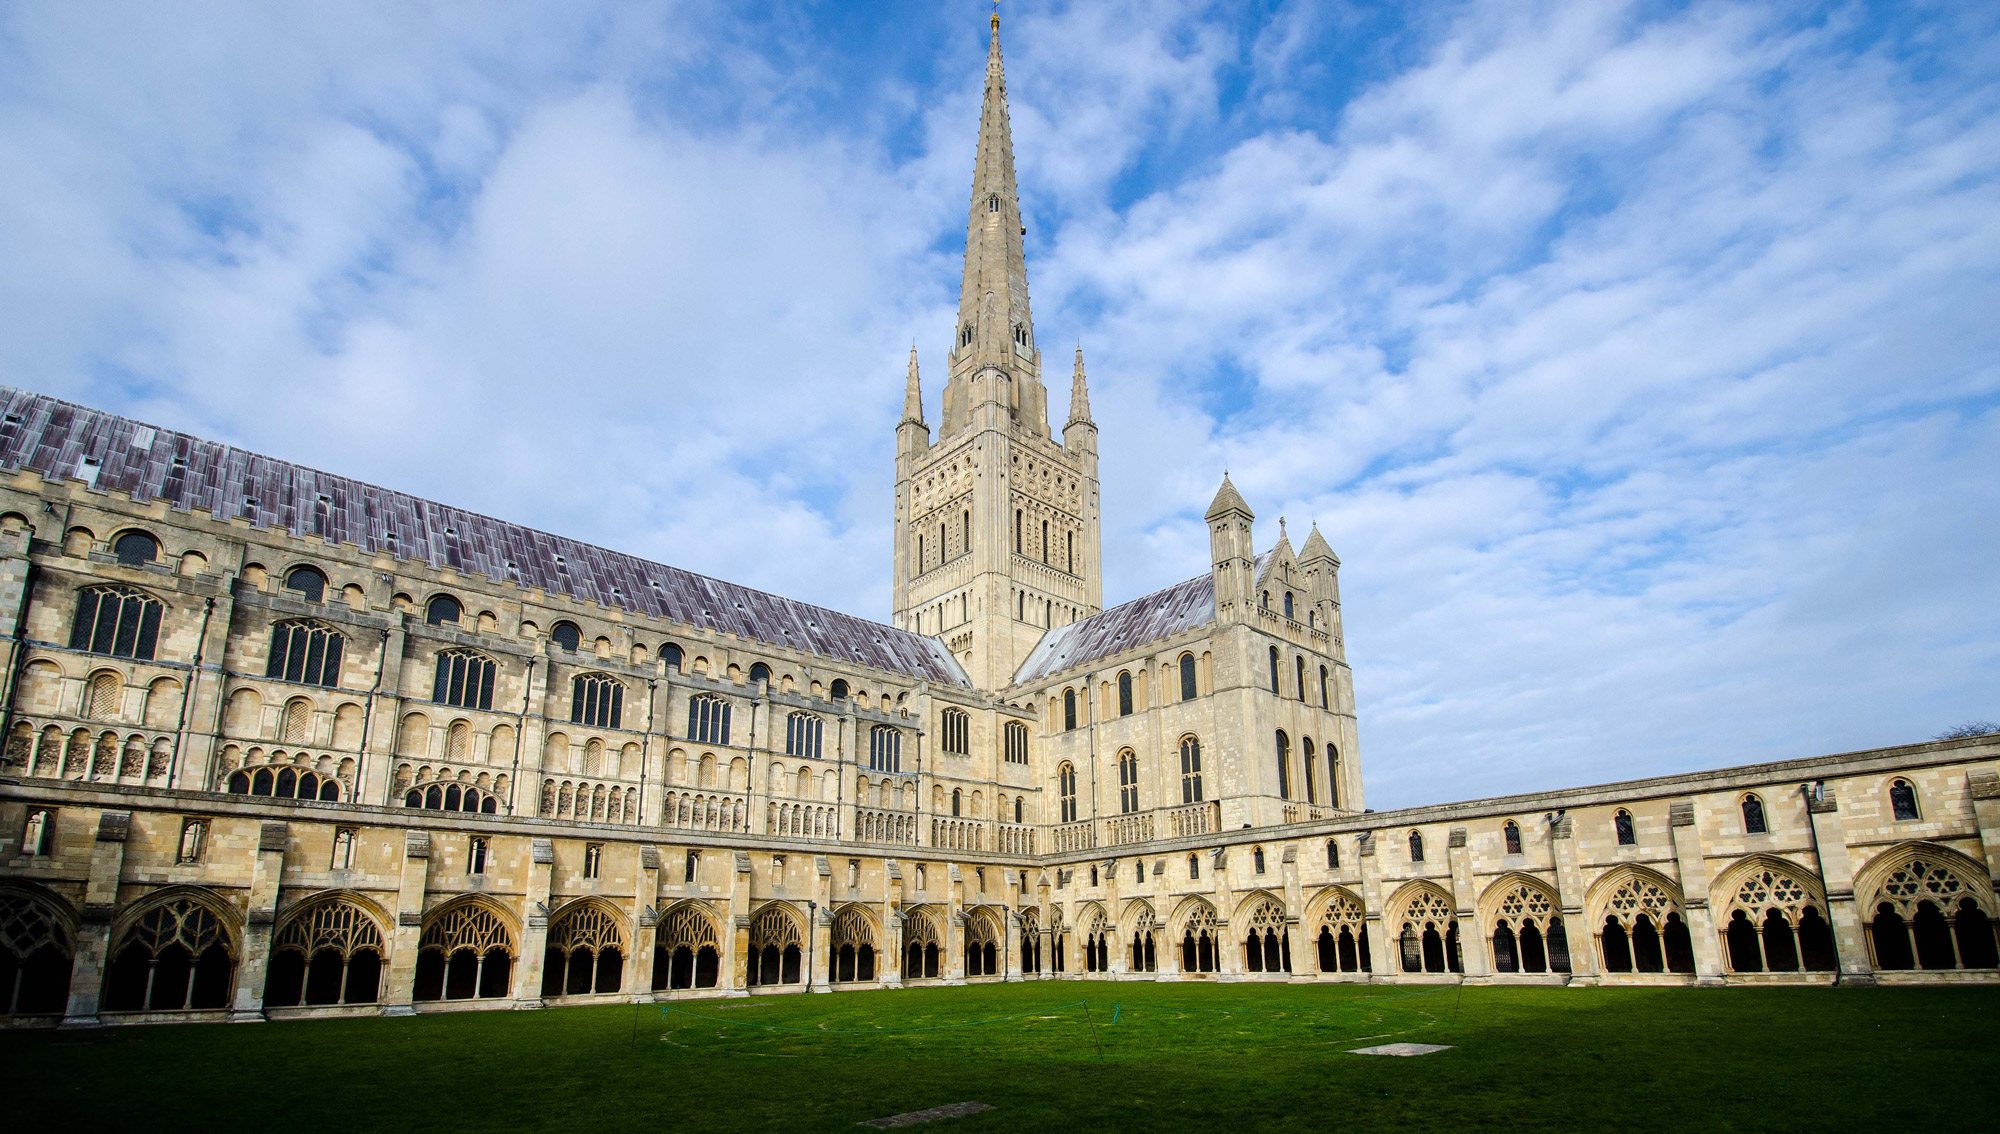 View of the impressive Norwich Cathedral